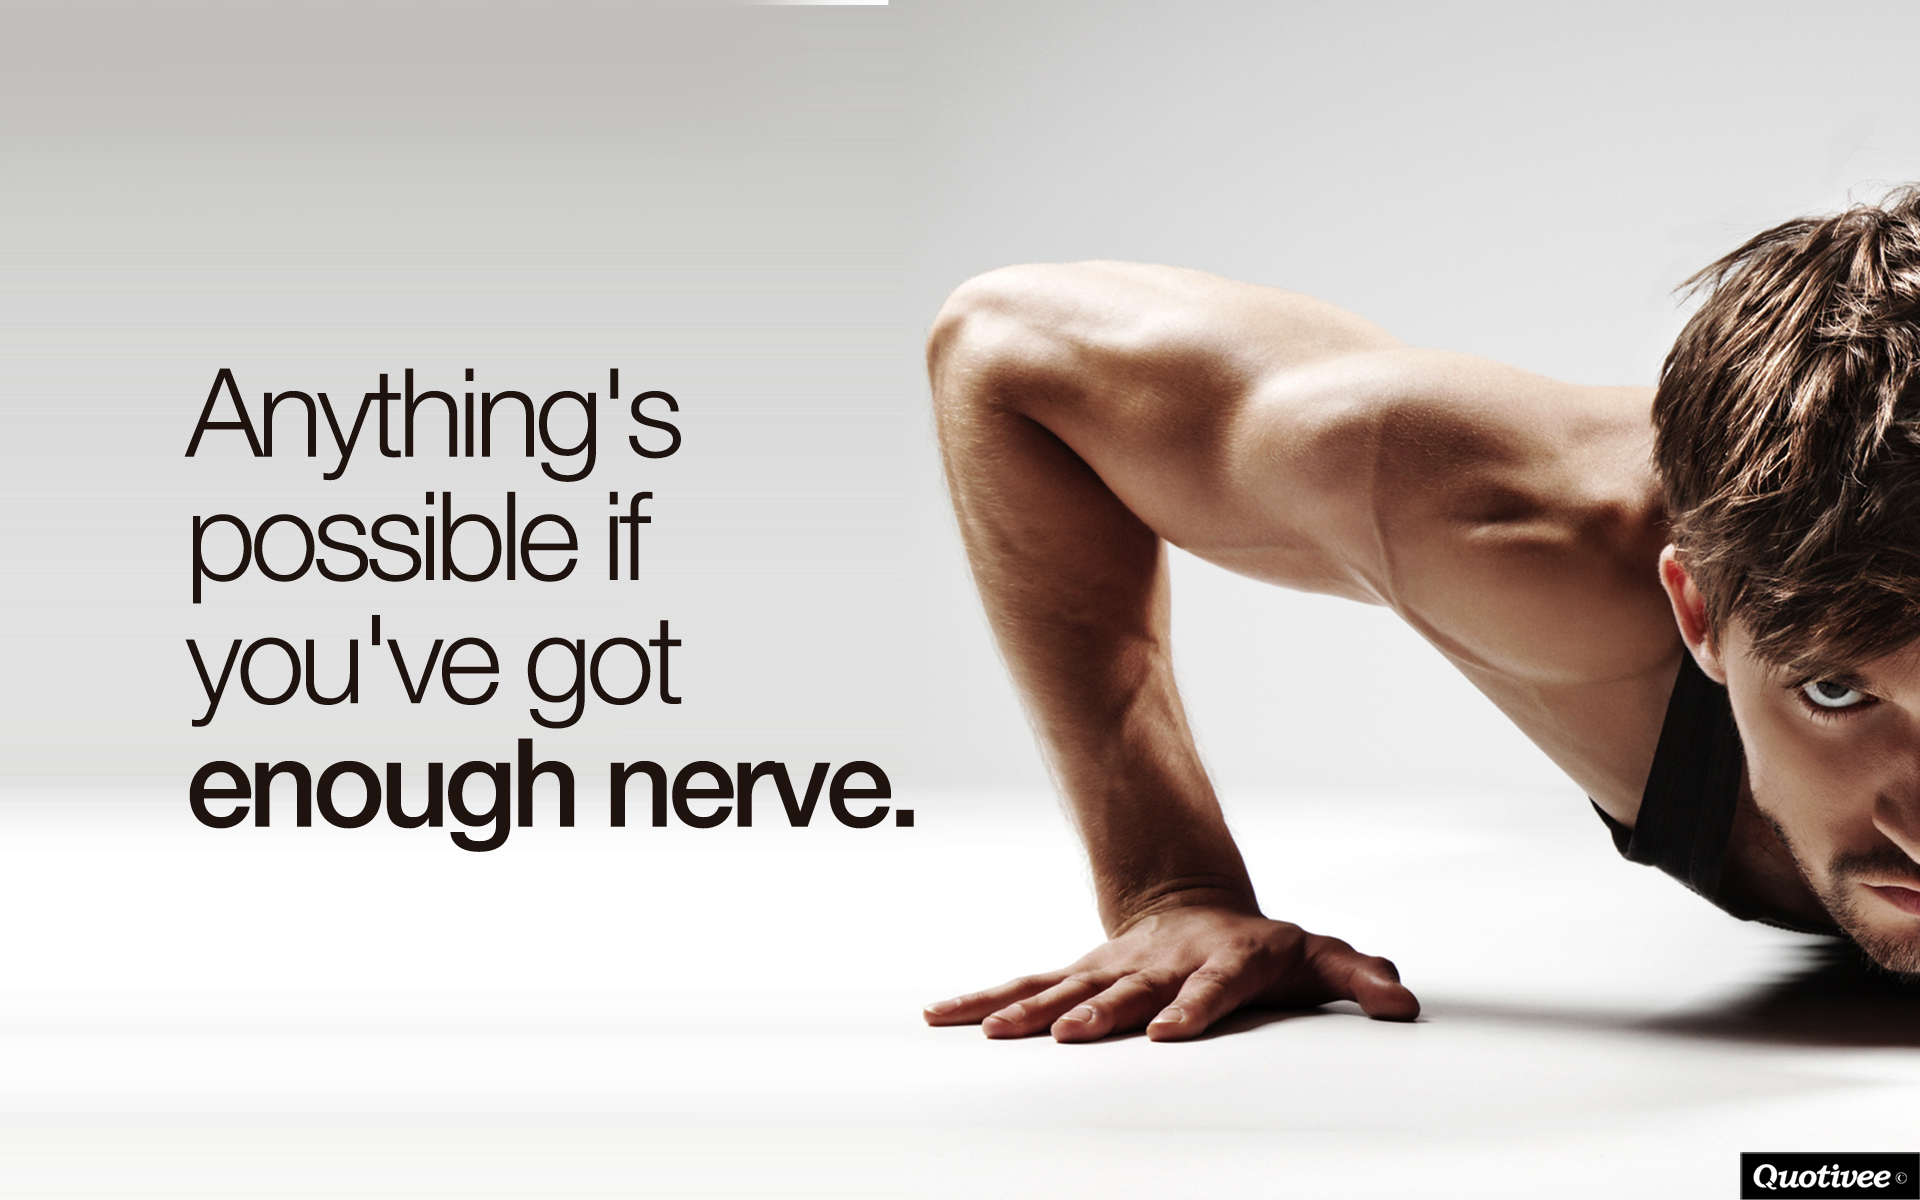 Never Give Up Quotes Wallpaper Anything S Possible Inspirational Quotes Quotivee